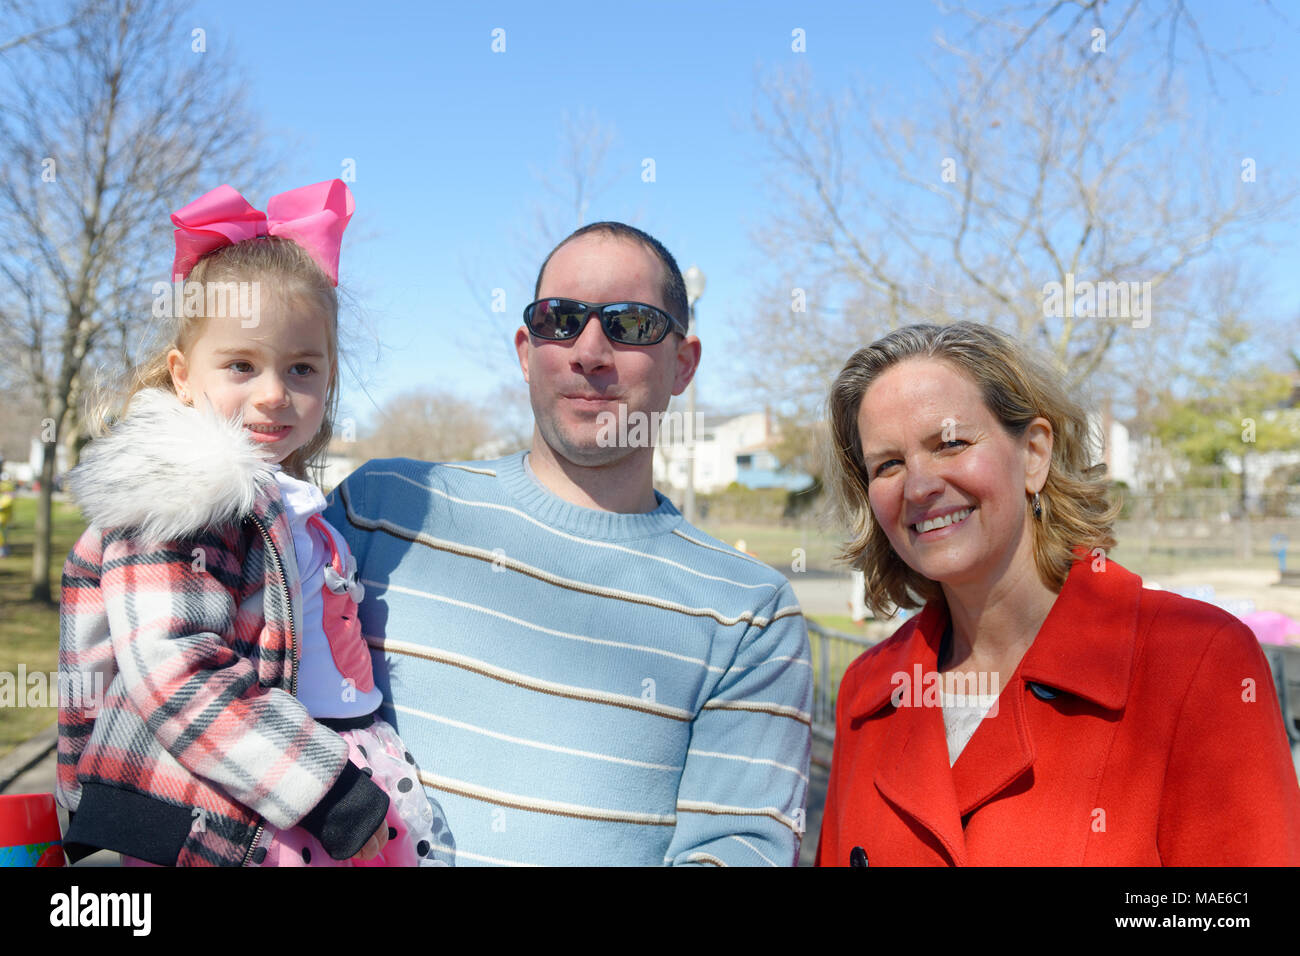 North Merrick, New York, USA. 31st Mar, 2018. R-L, Nassau County Executive LAURA CURRAN poses with ROBERT SCHMID and his daughter BRIDGET SCHMID, 2, of Merrick, at the Annual Eggstravaganza, held at Fraser Park and hosted by North and Central Merrick Civic Association (NCMCA) and Merrick's American Legion Auxiliary Unit 1282. Credit: Ann Parry/ZUMA Wire/Alamy Live News - Stock Image